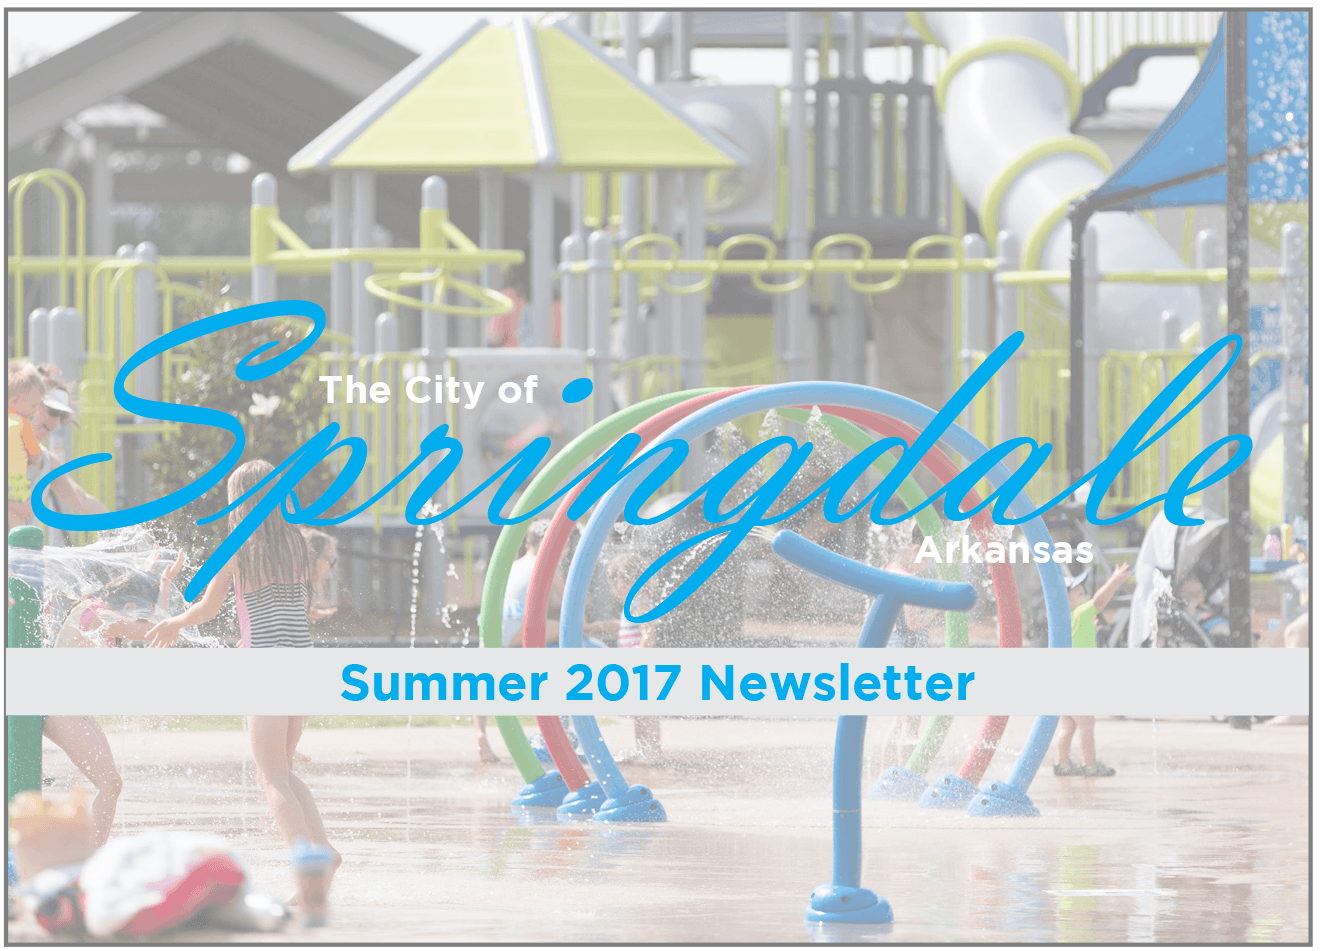 Summer 2017 Newsletter Image